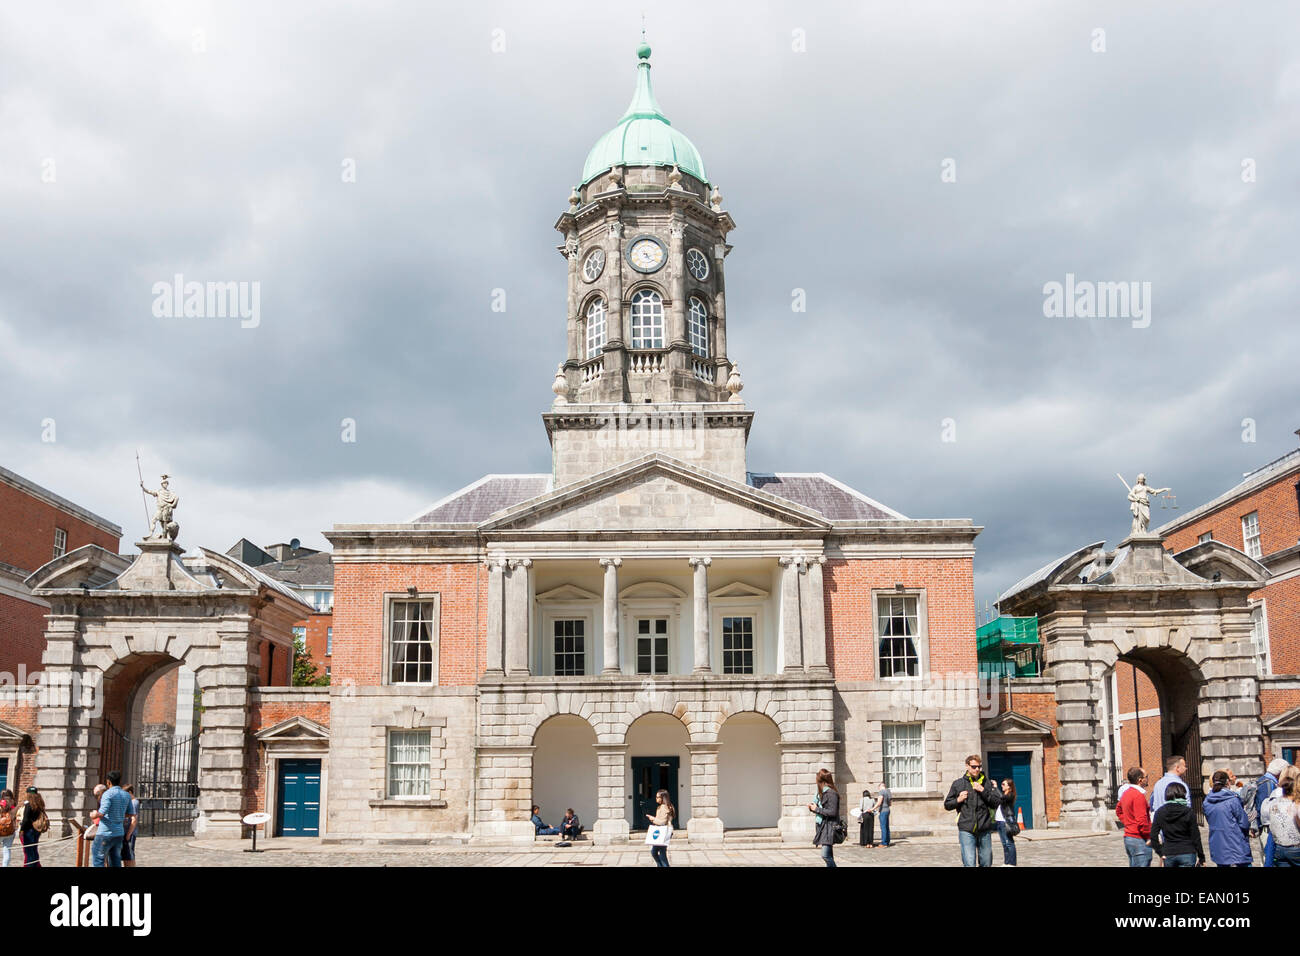 Dublin, Ireland - Aug 11, 2014: The Bedford Tower at the Dublin Castle in Dublin, Ireland on August 11, 2014. - Stock Image